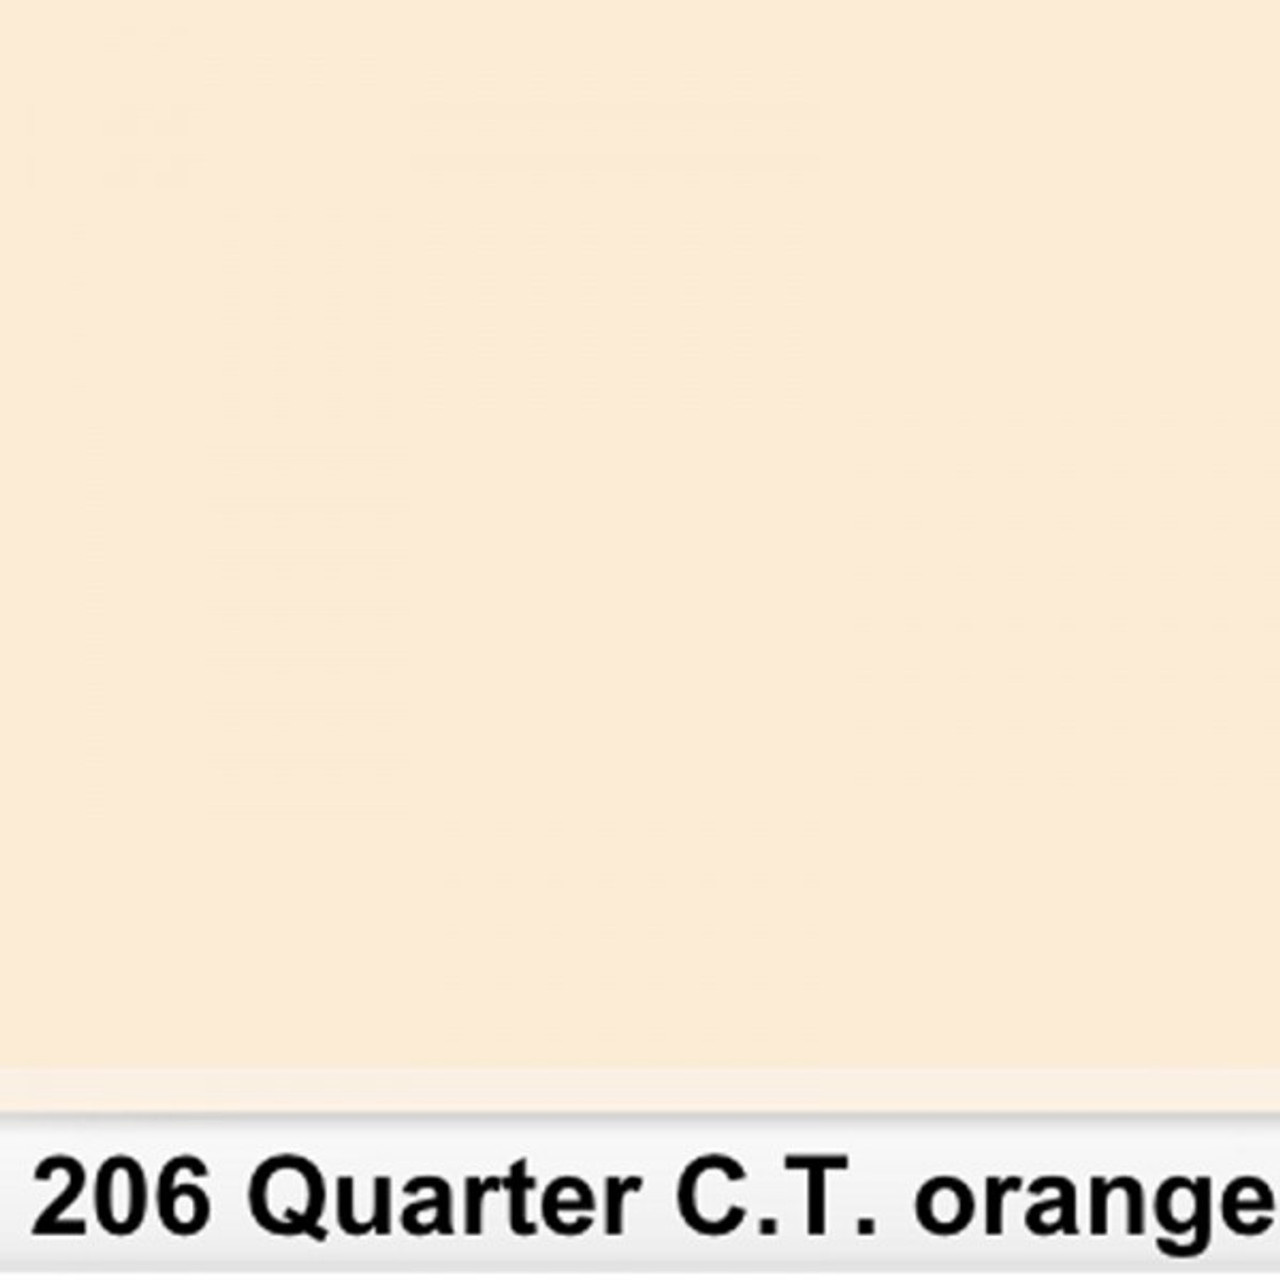 Lee Filters Sheet #206 Qtr C.T. Orange